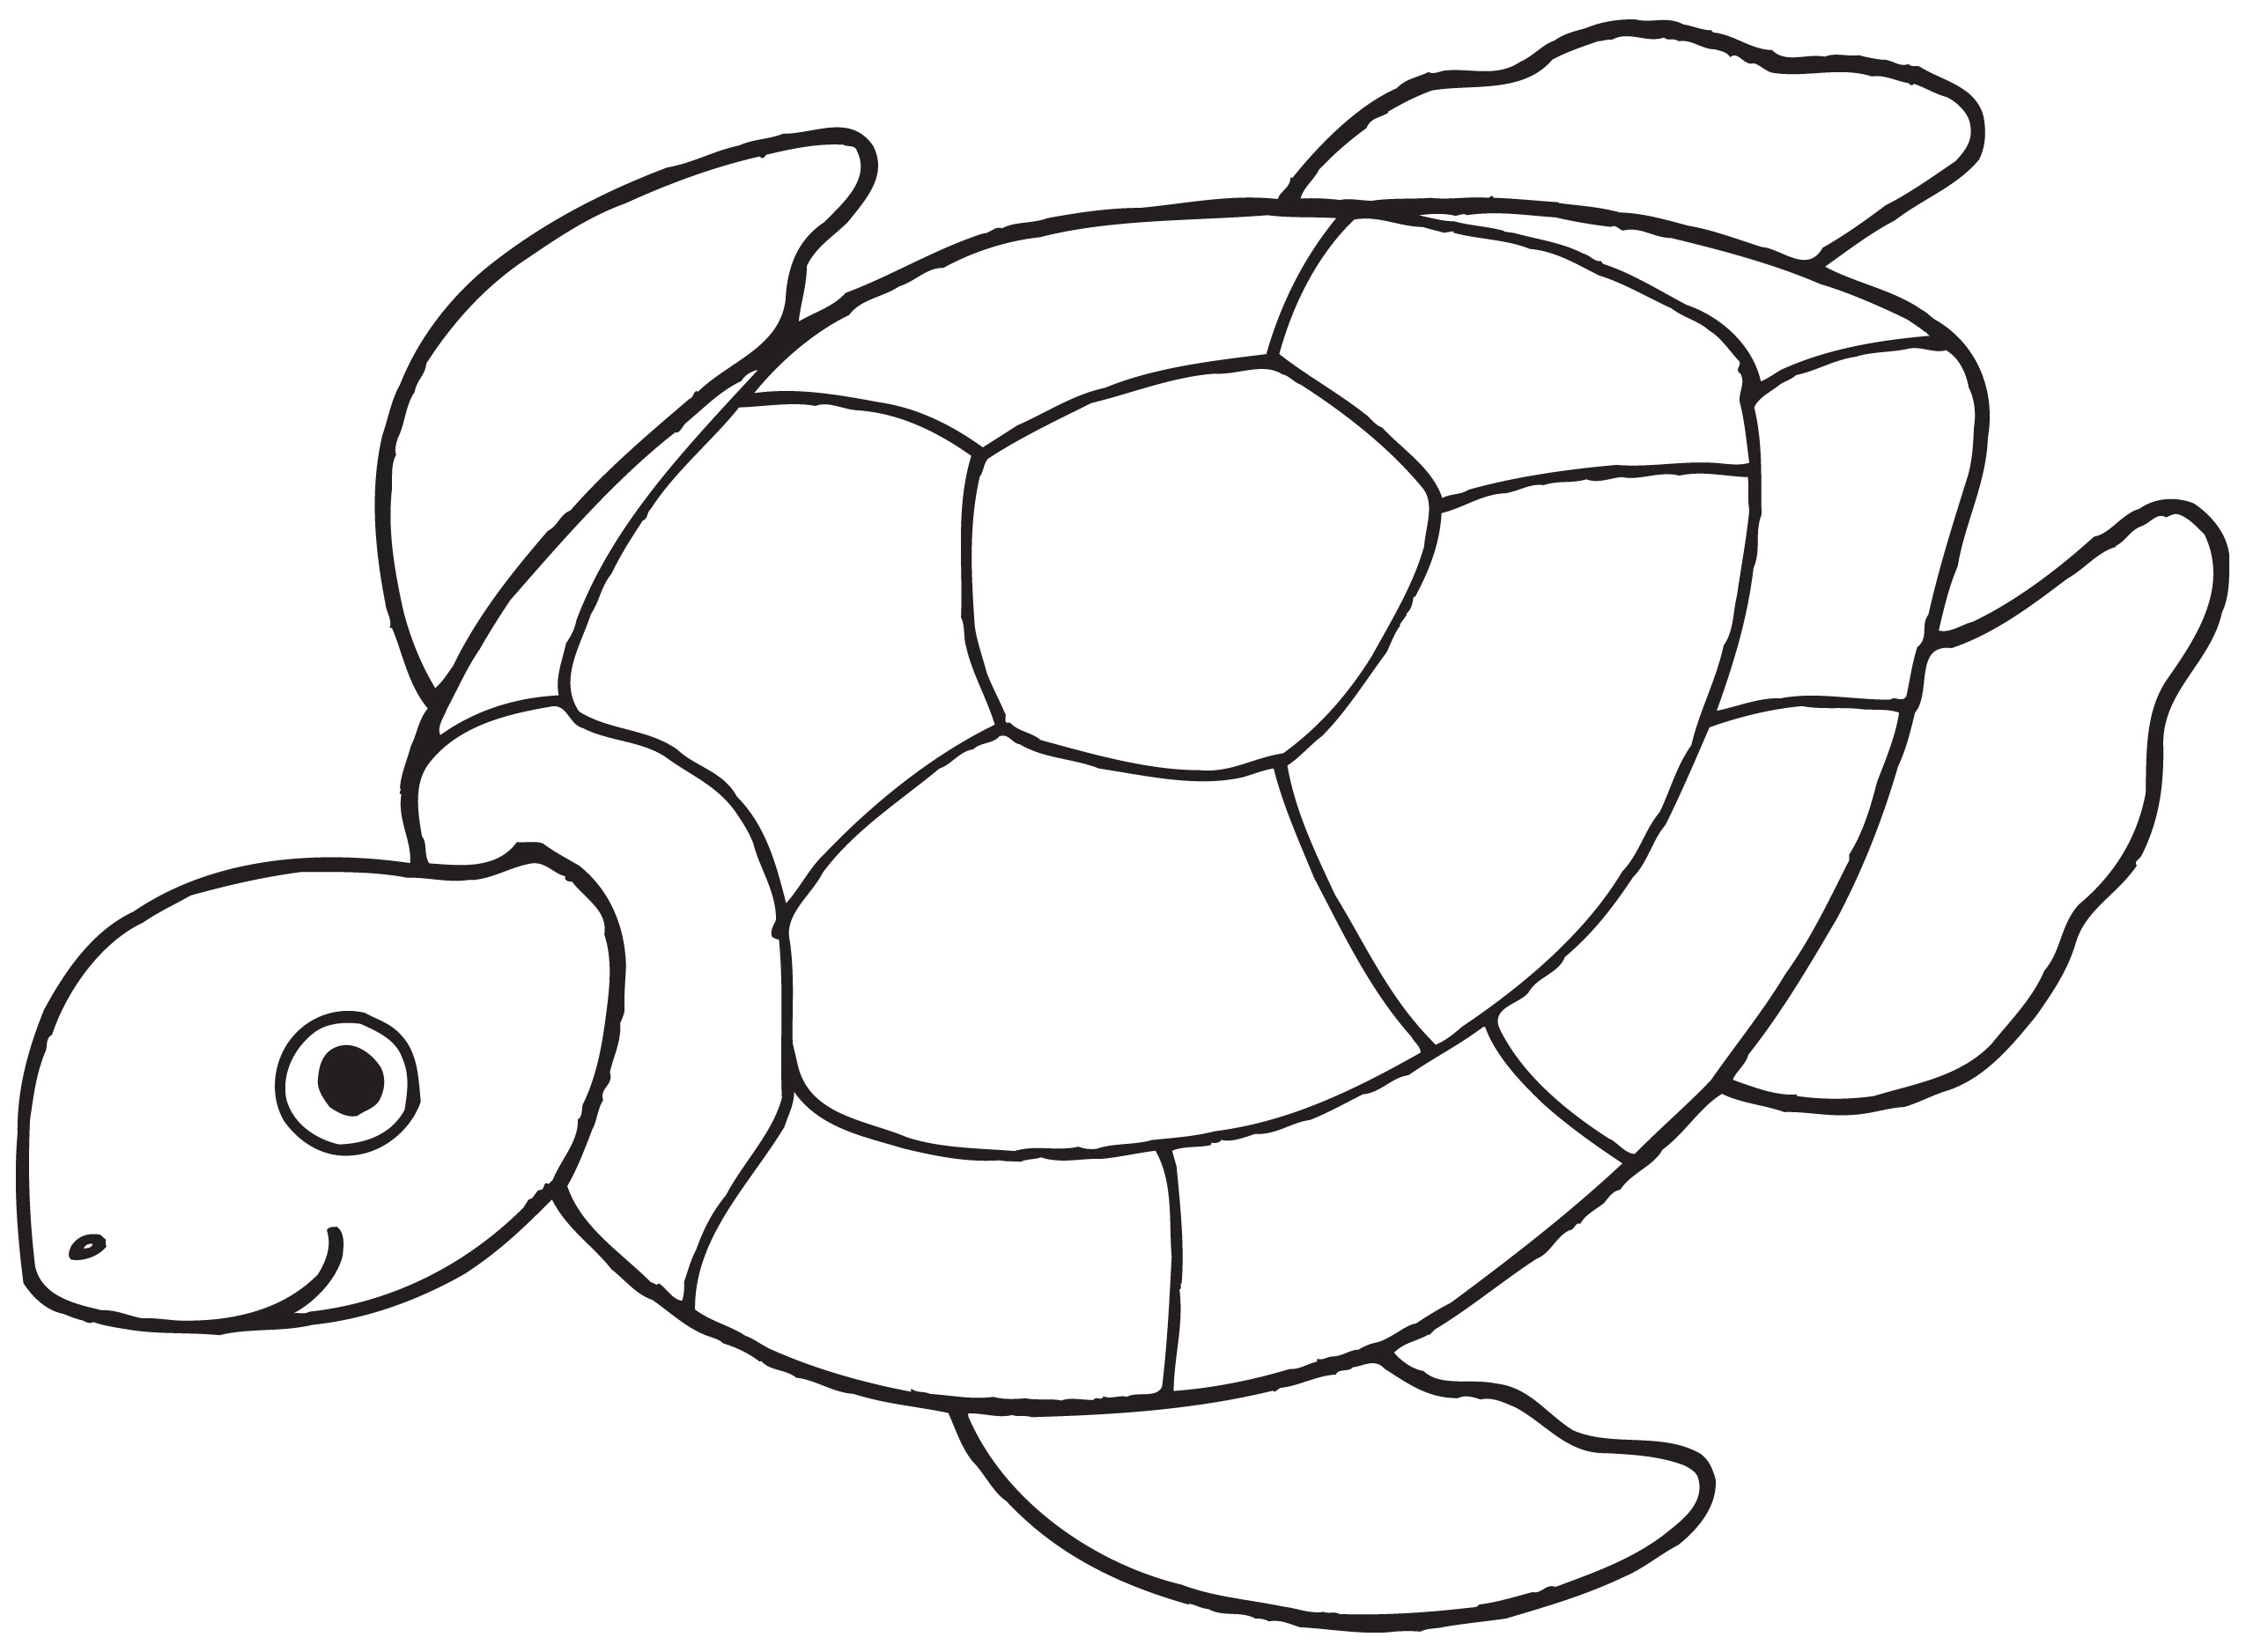 2550x1876 Turtle Clip Art Black And White Clipart Panda